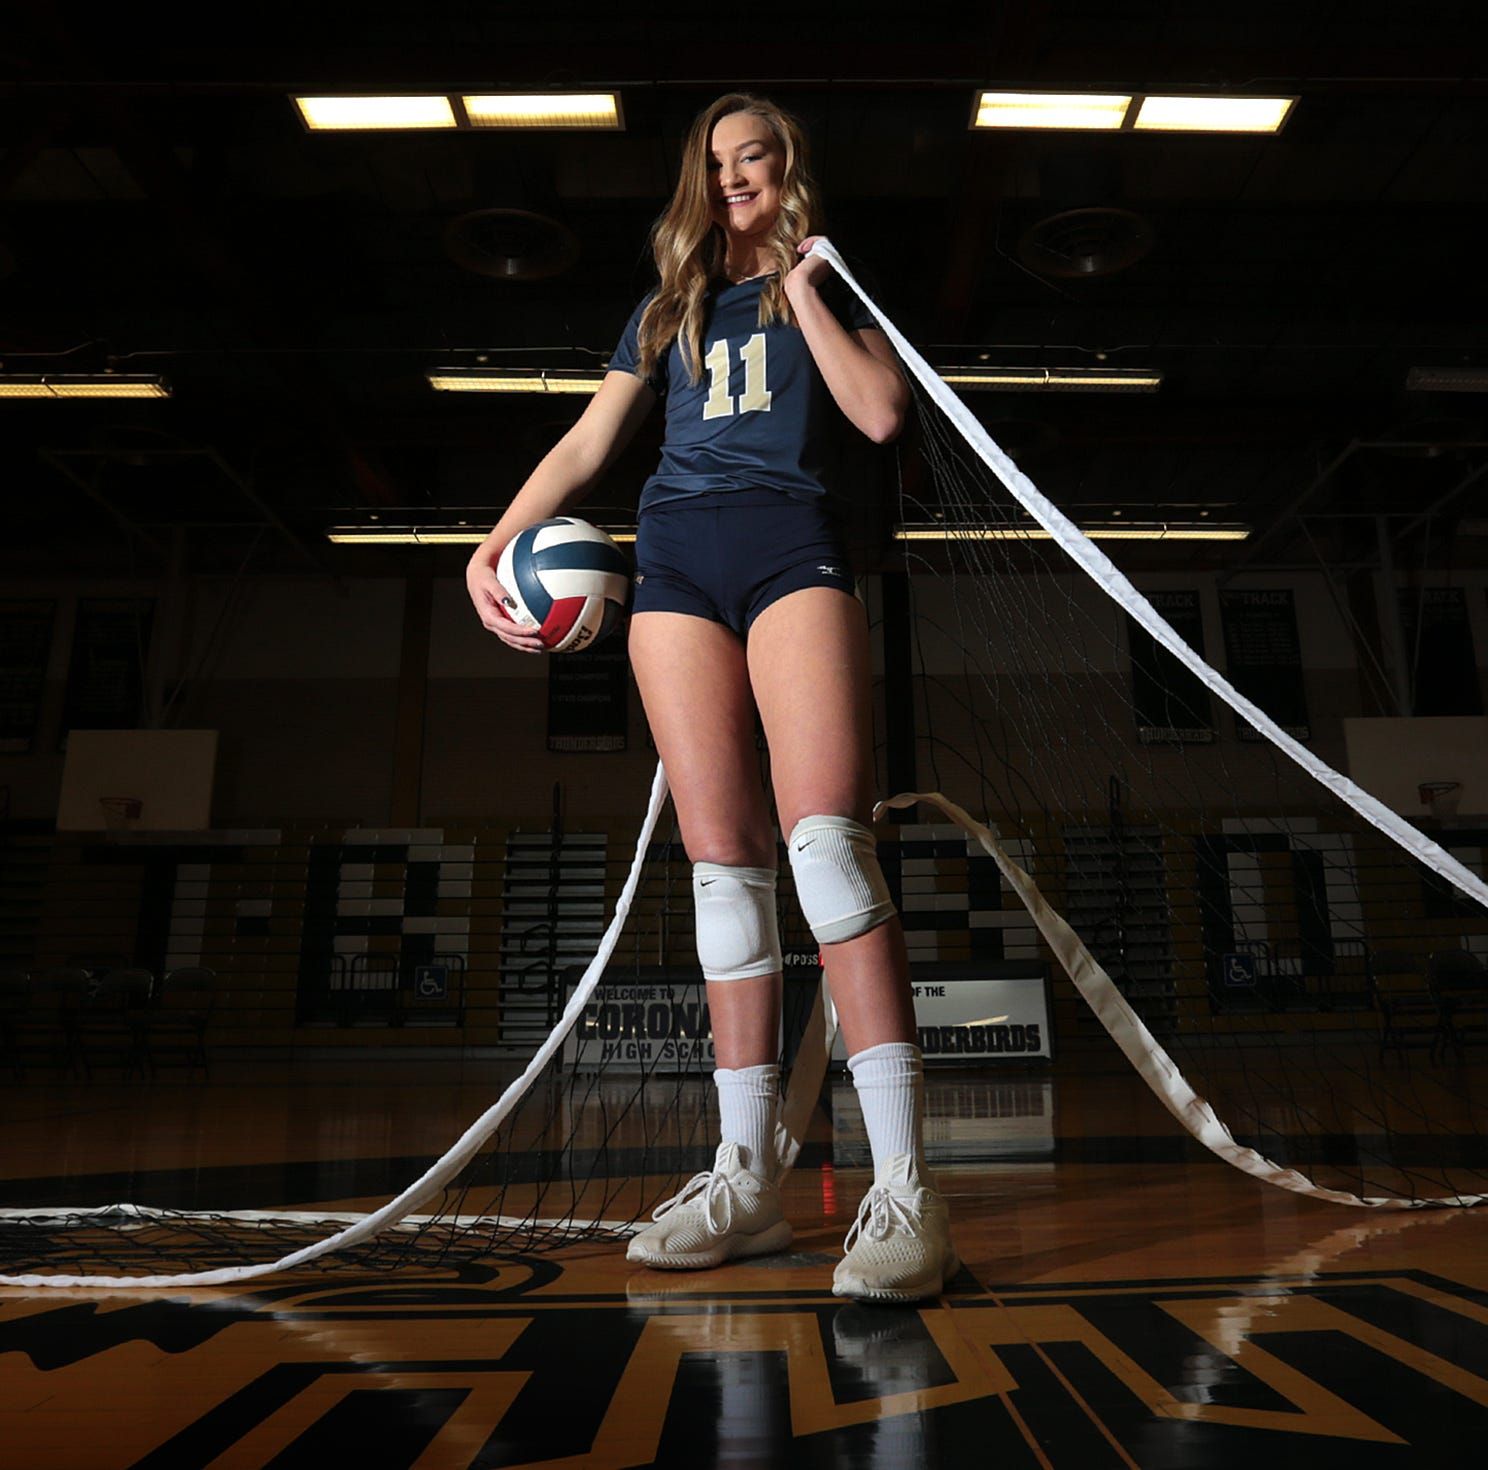 Coronado senior Campbell Bowden is this year's El Paso Times' High School Volleyball Player of the Year, the third straight year she has received the award.